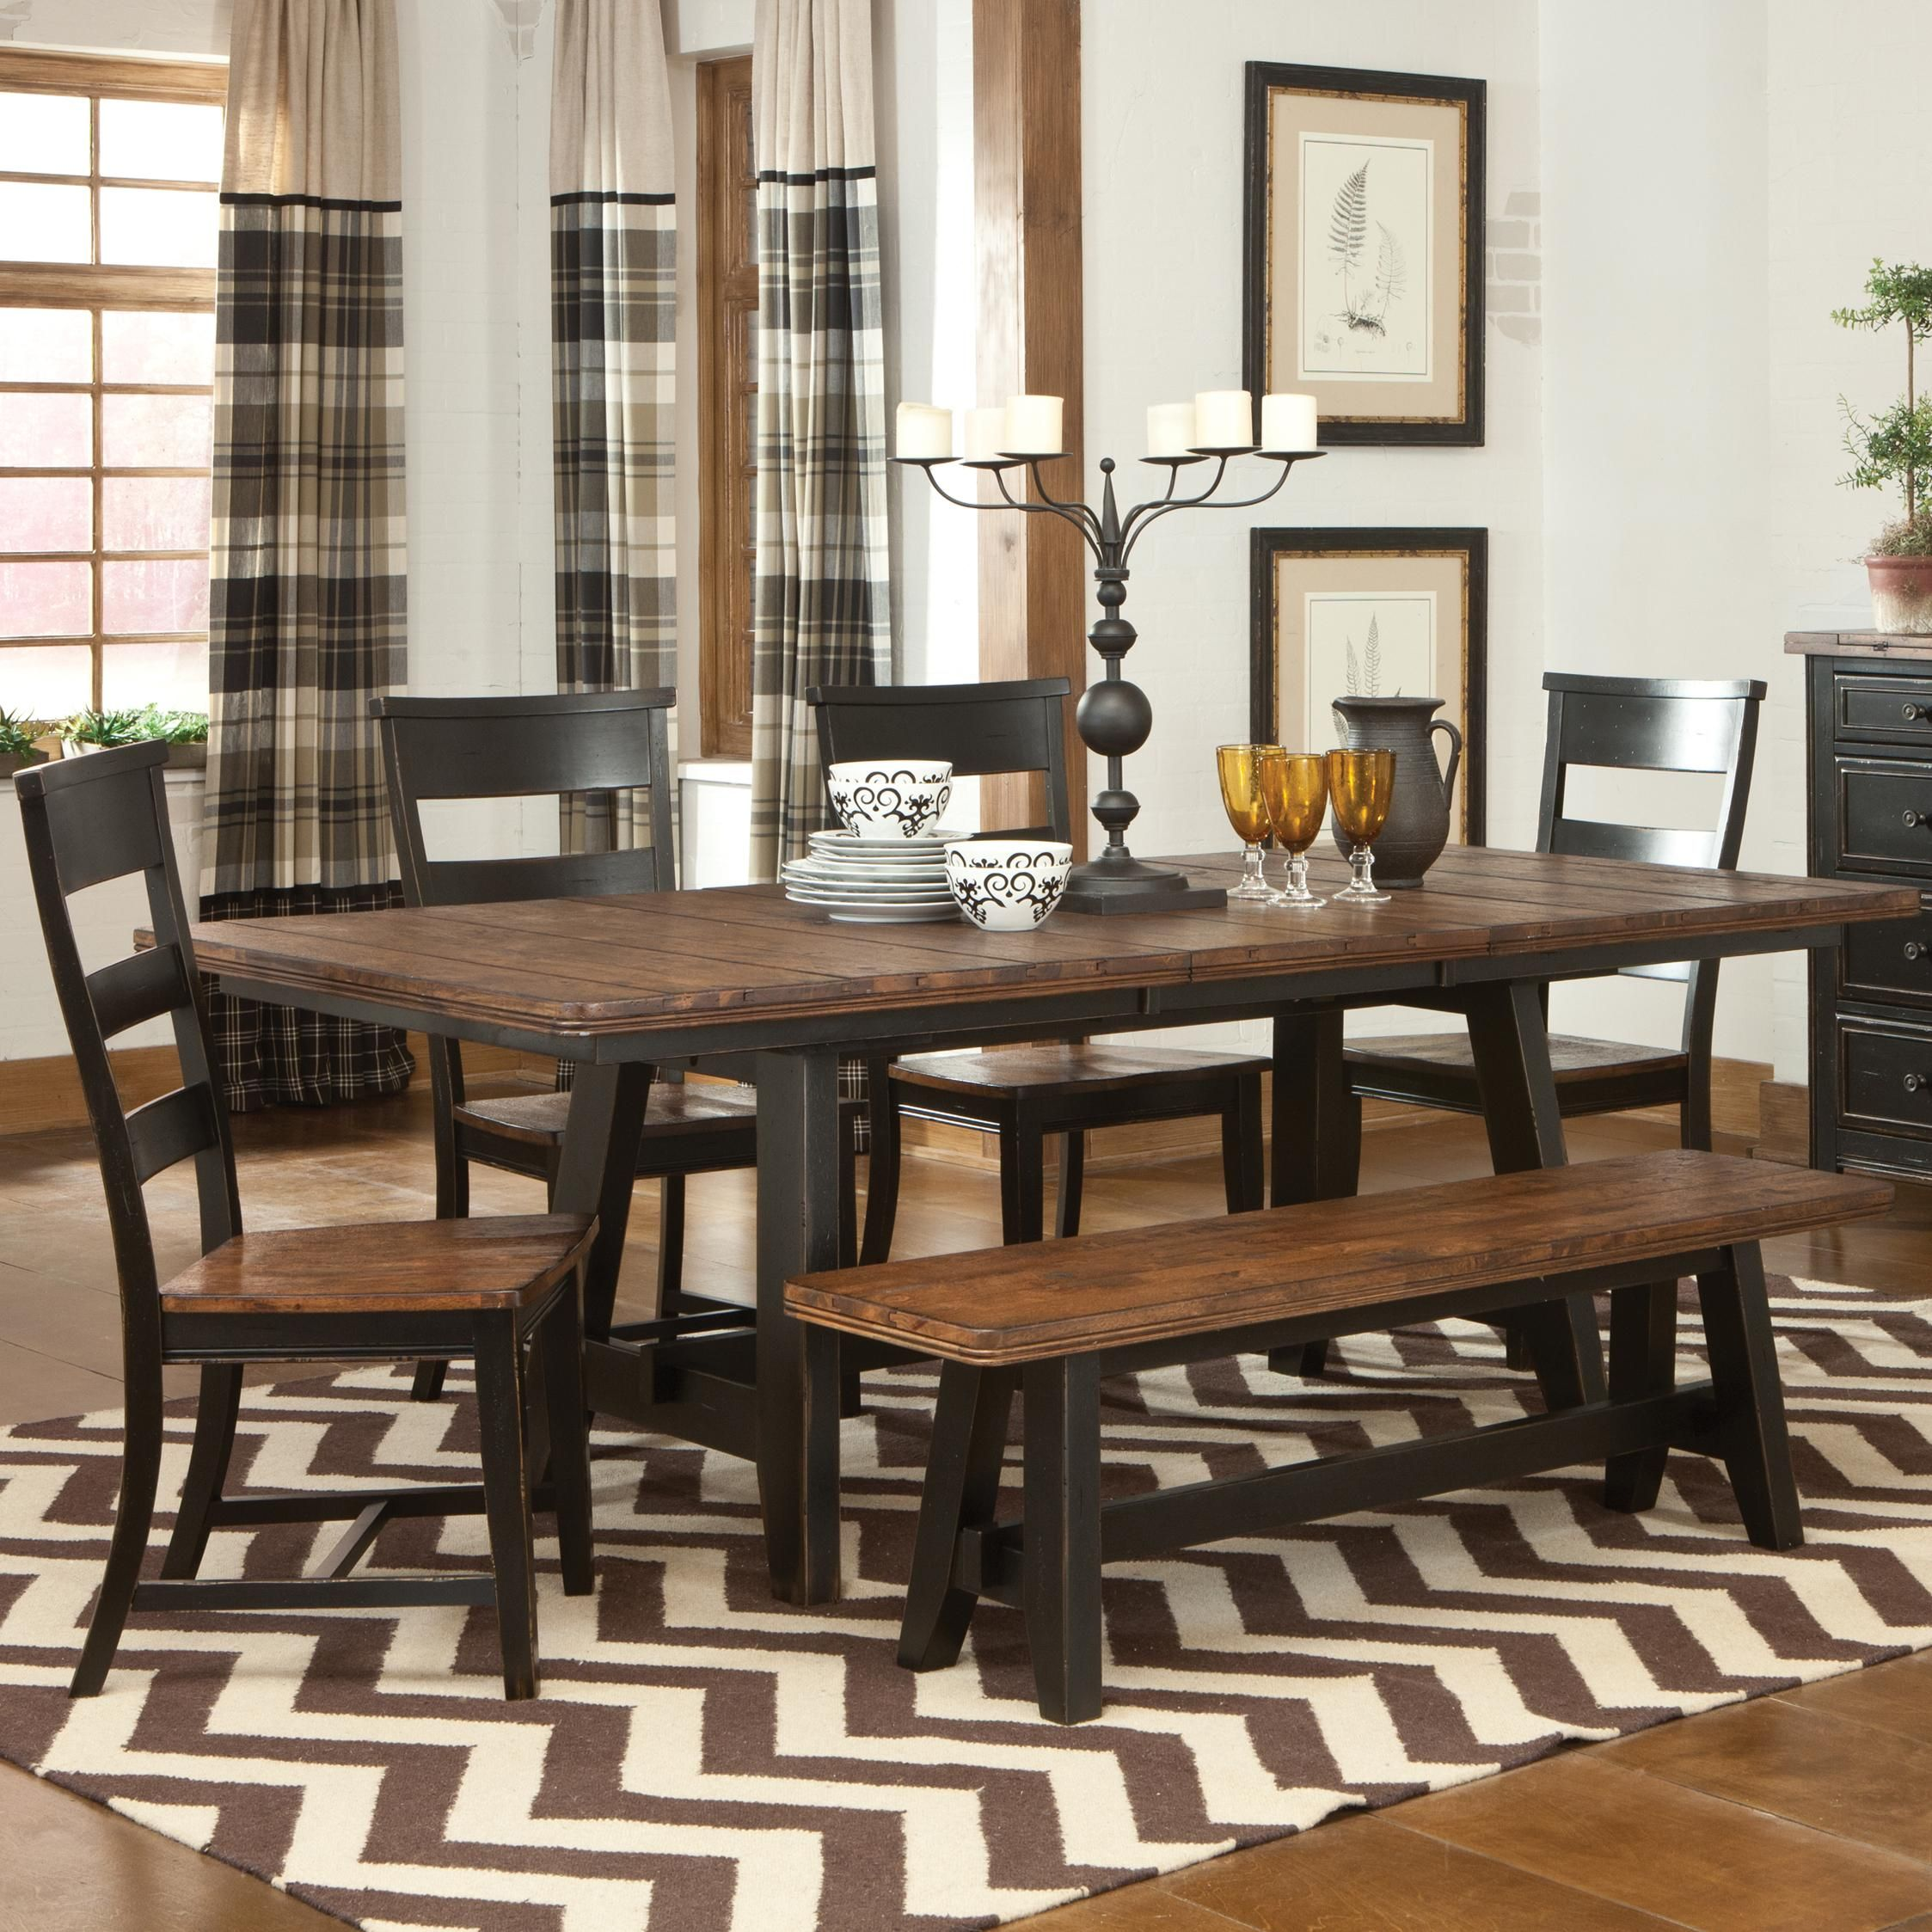 Intercon Winchester 6 Piece Trestle Table And Ladder Back Chair Set With  Backless Dining Bench   Godby Home Furnishings   Dining 5 Piece Set.